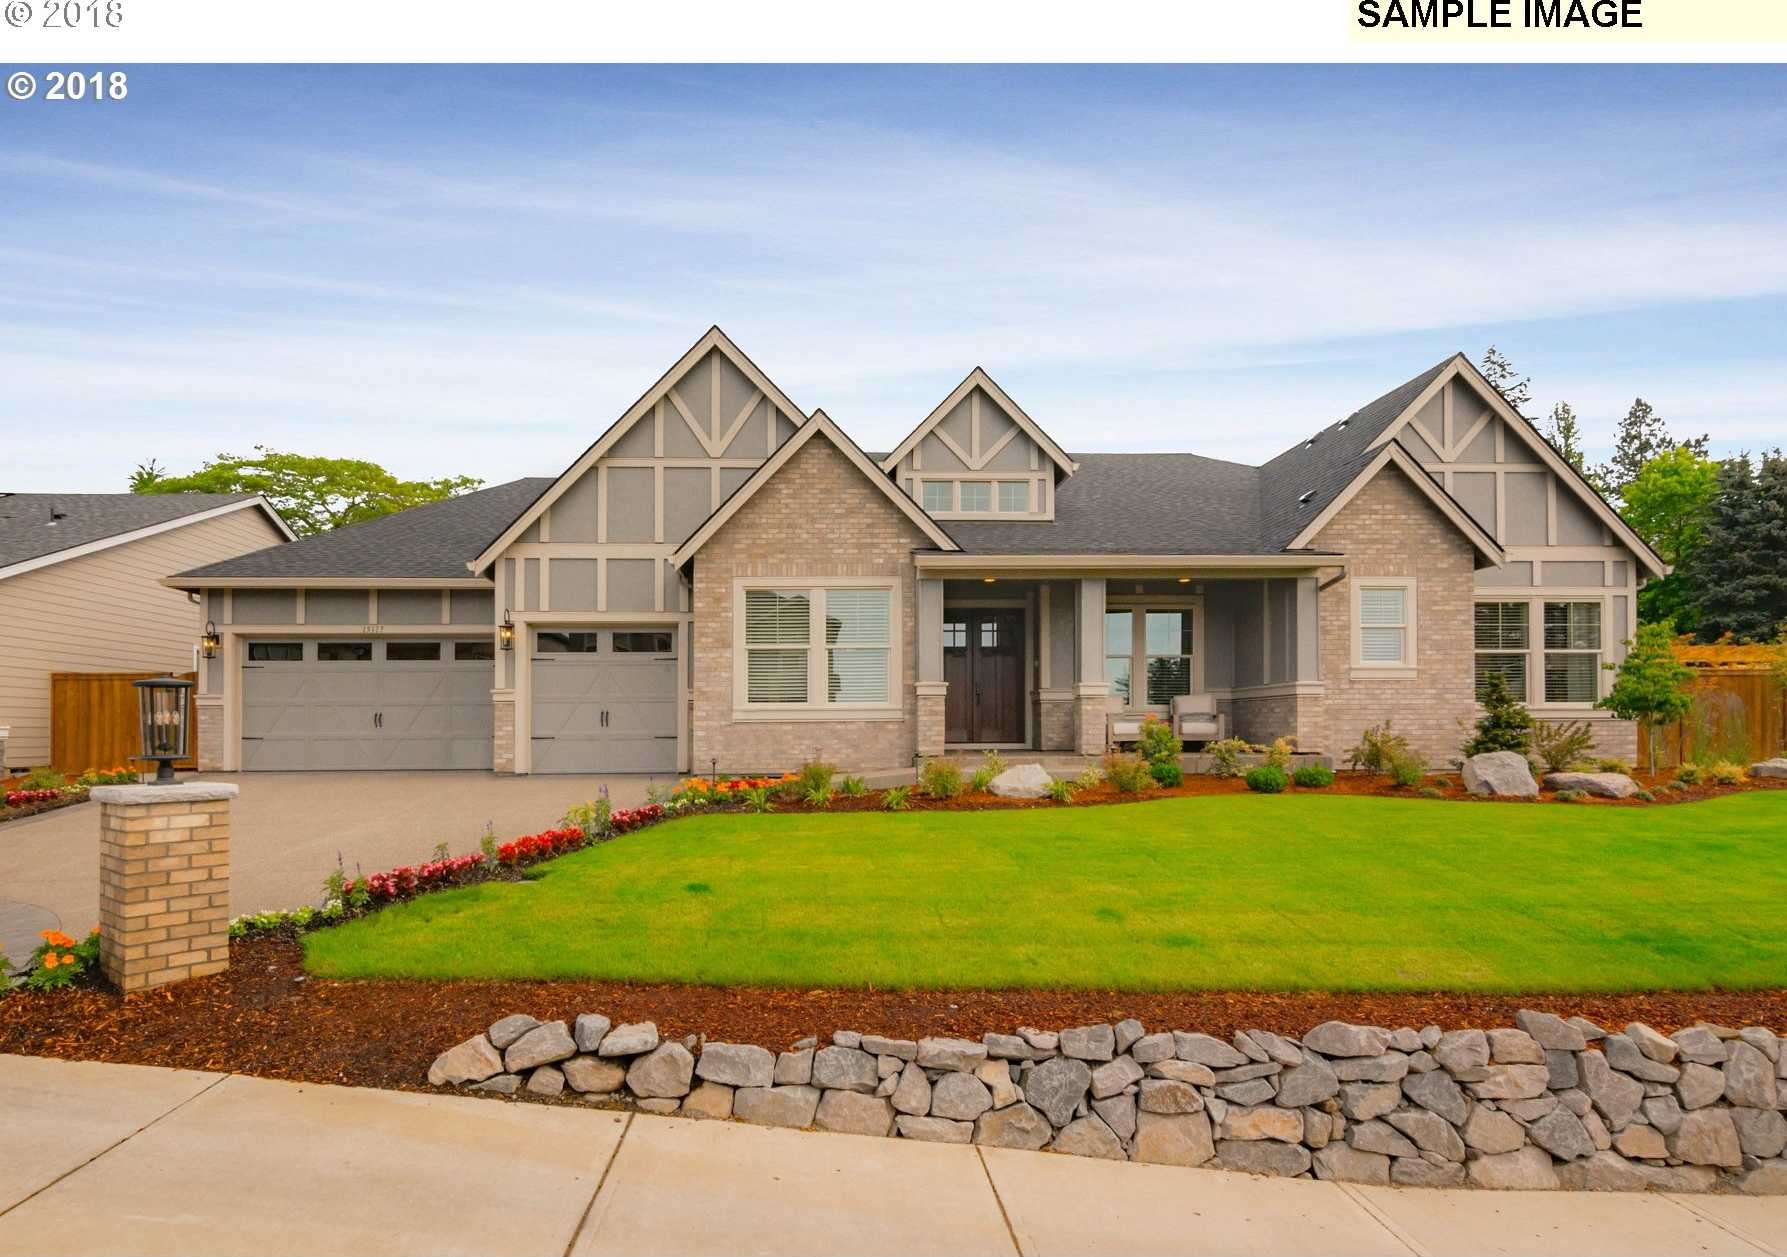 $917,000 - 4Br/4Ba -  for Sale in Estates At River Terrace, Tigard